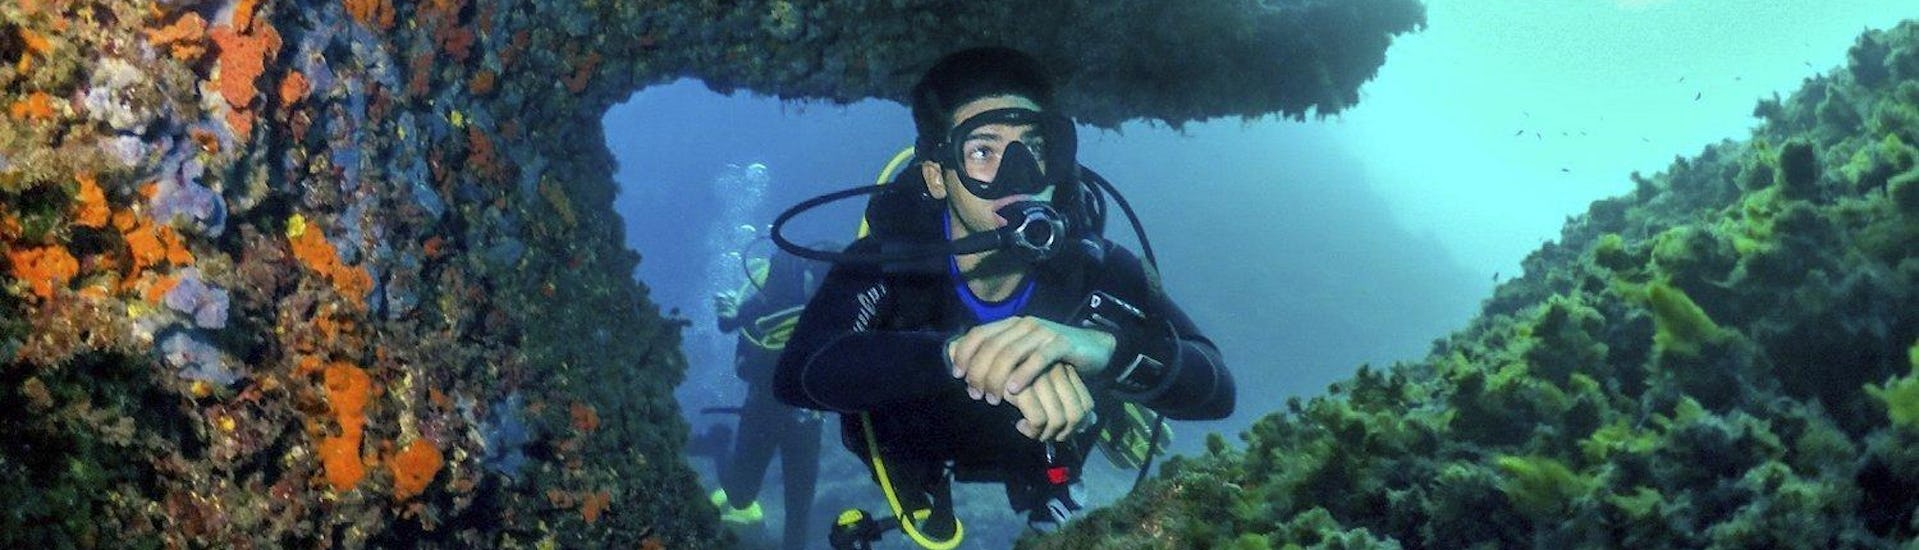 Scuba Diving - Guided Boat Dives from Porto Cristo